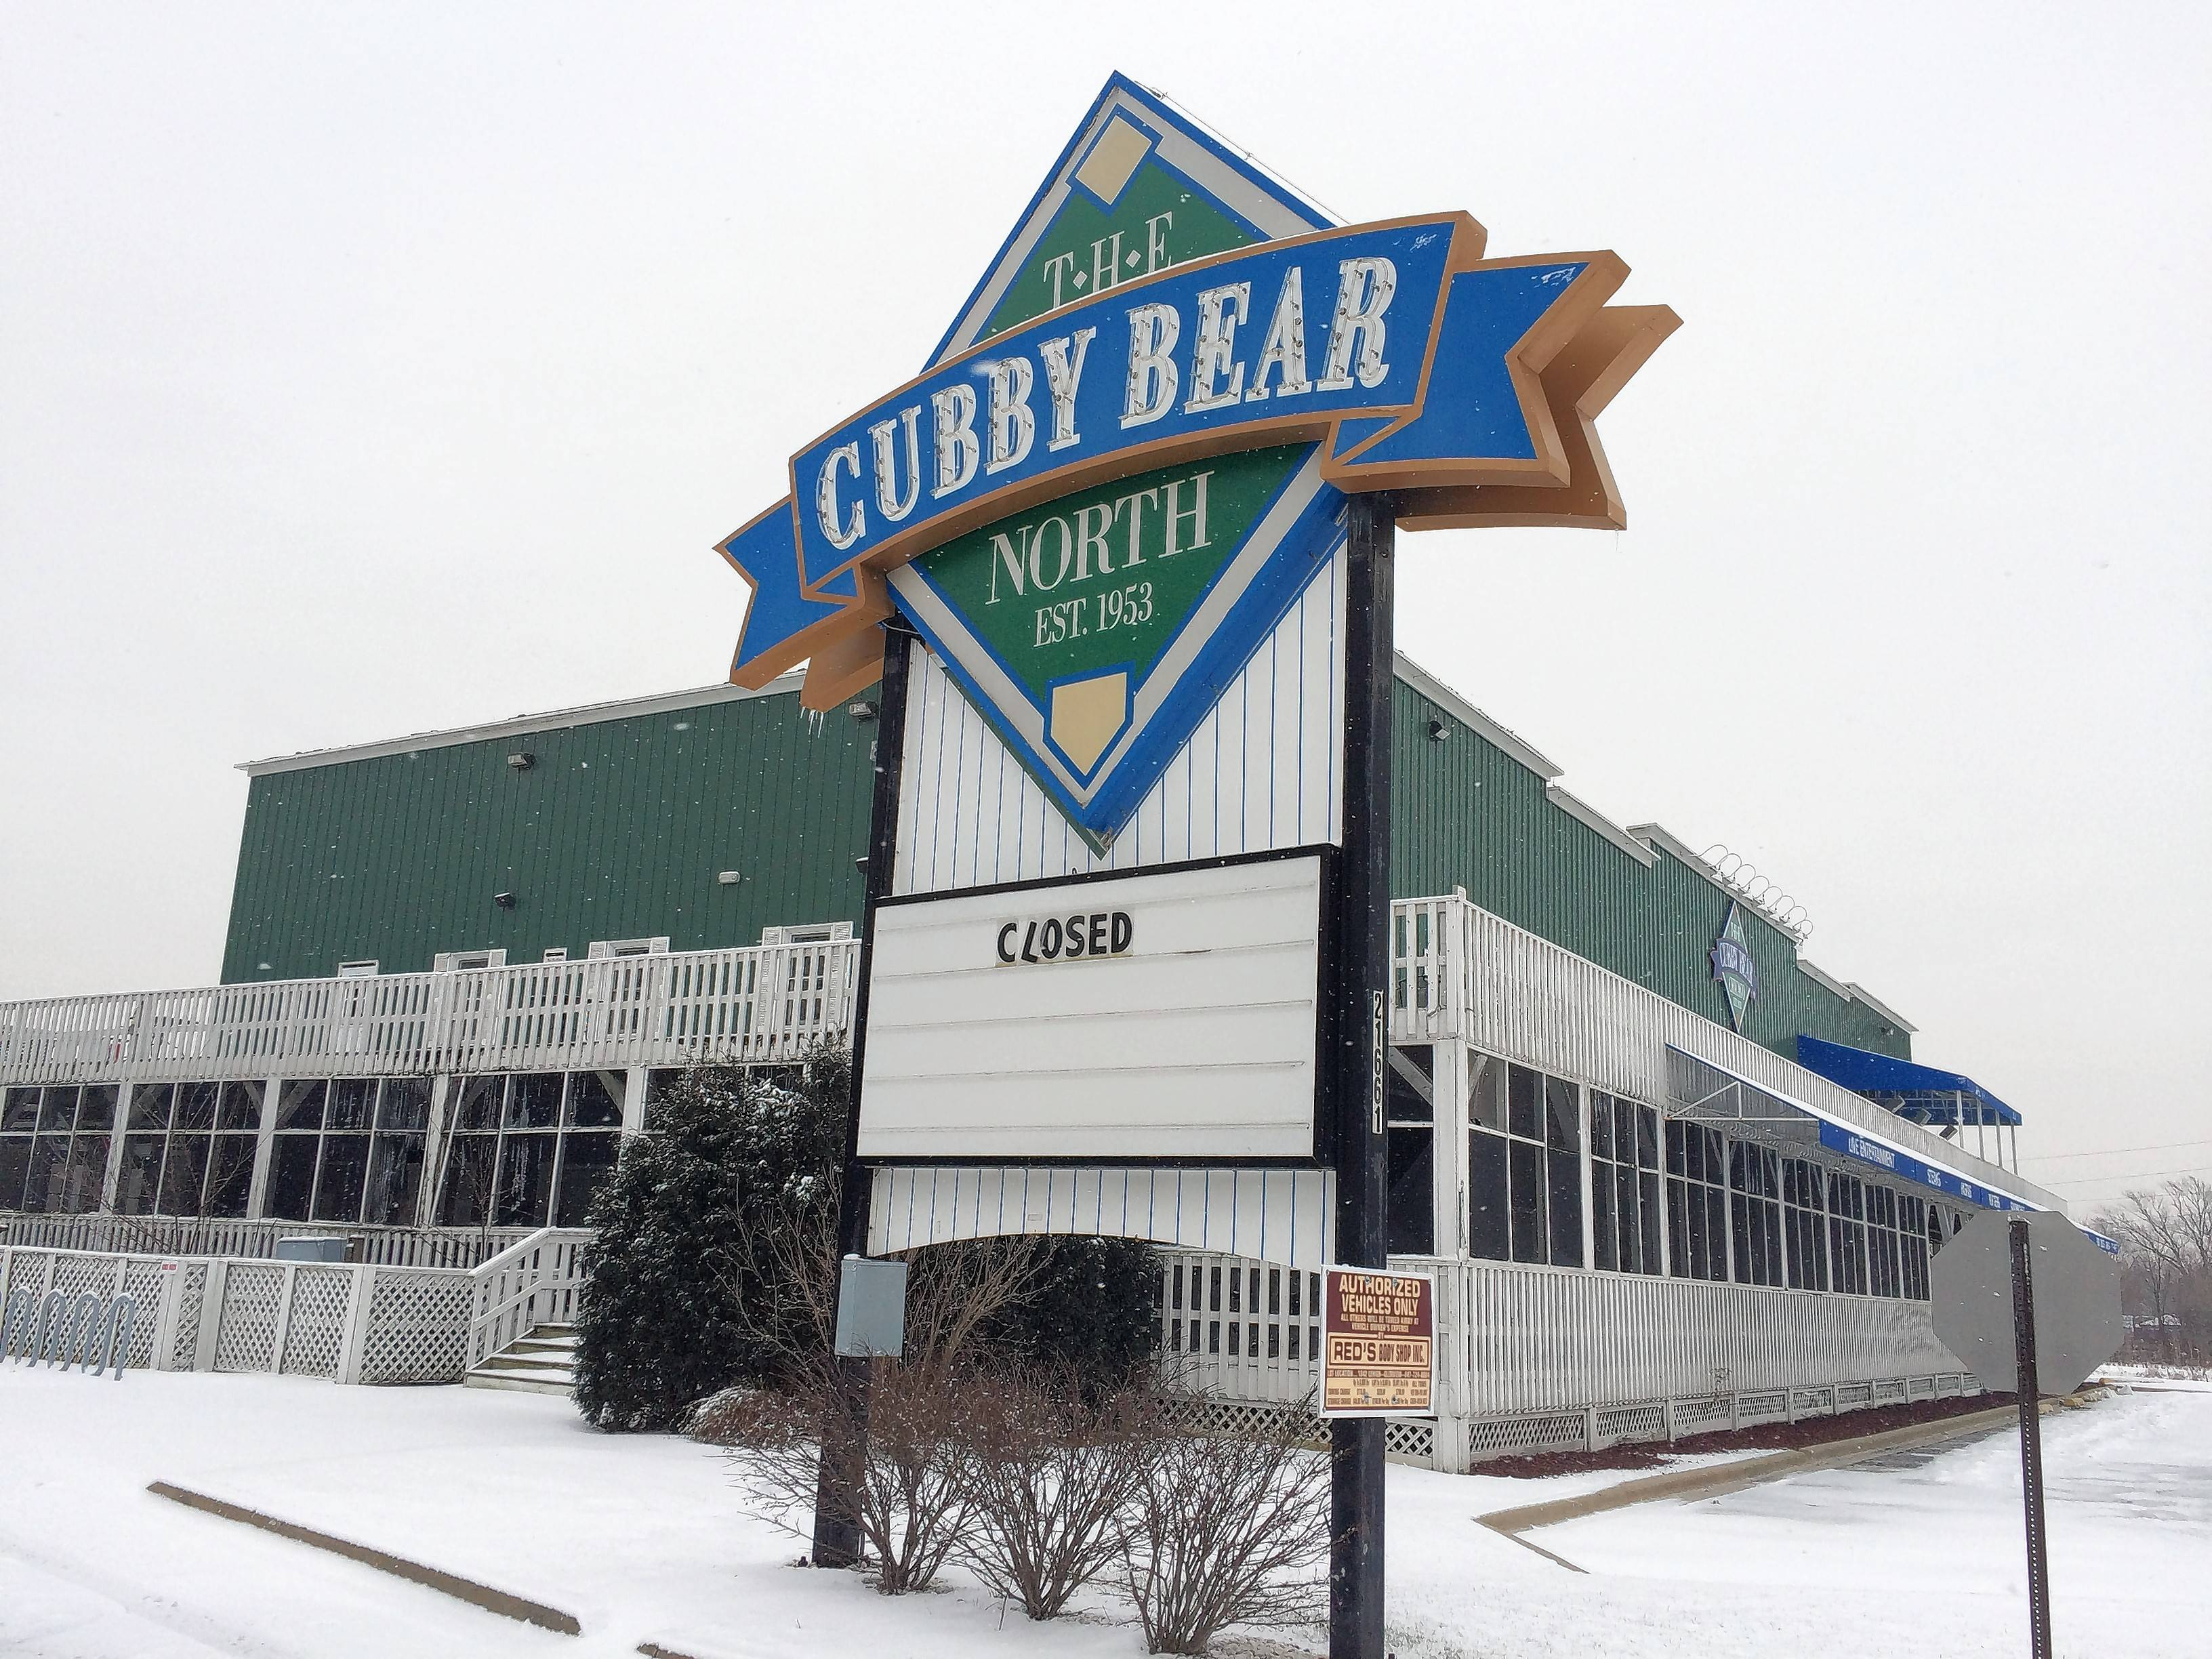 Lincolnshire annexes old Cubby Bear North, golf course